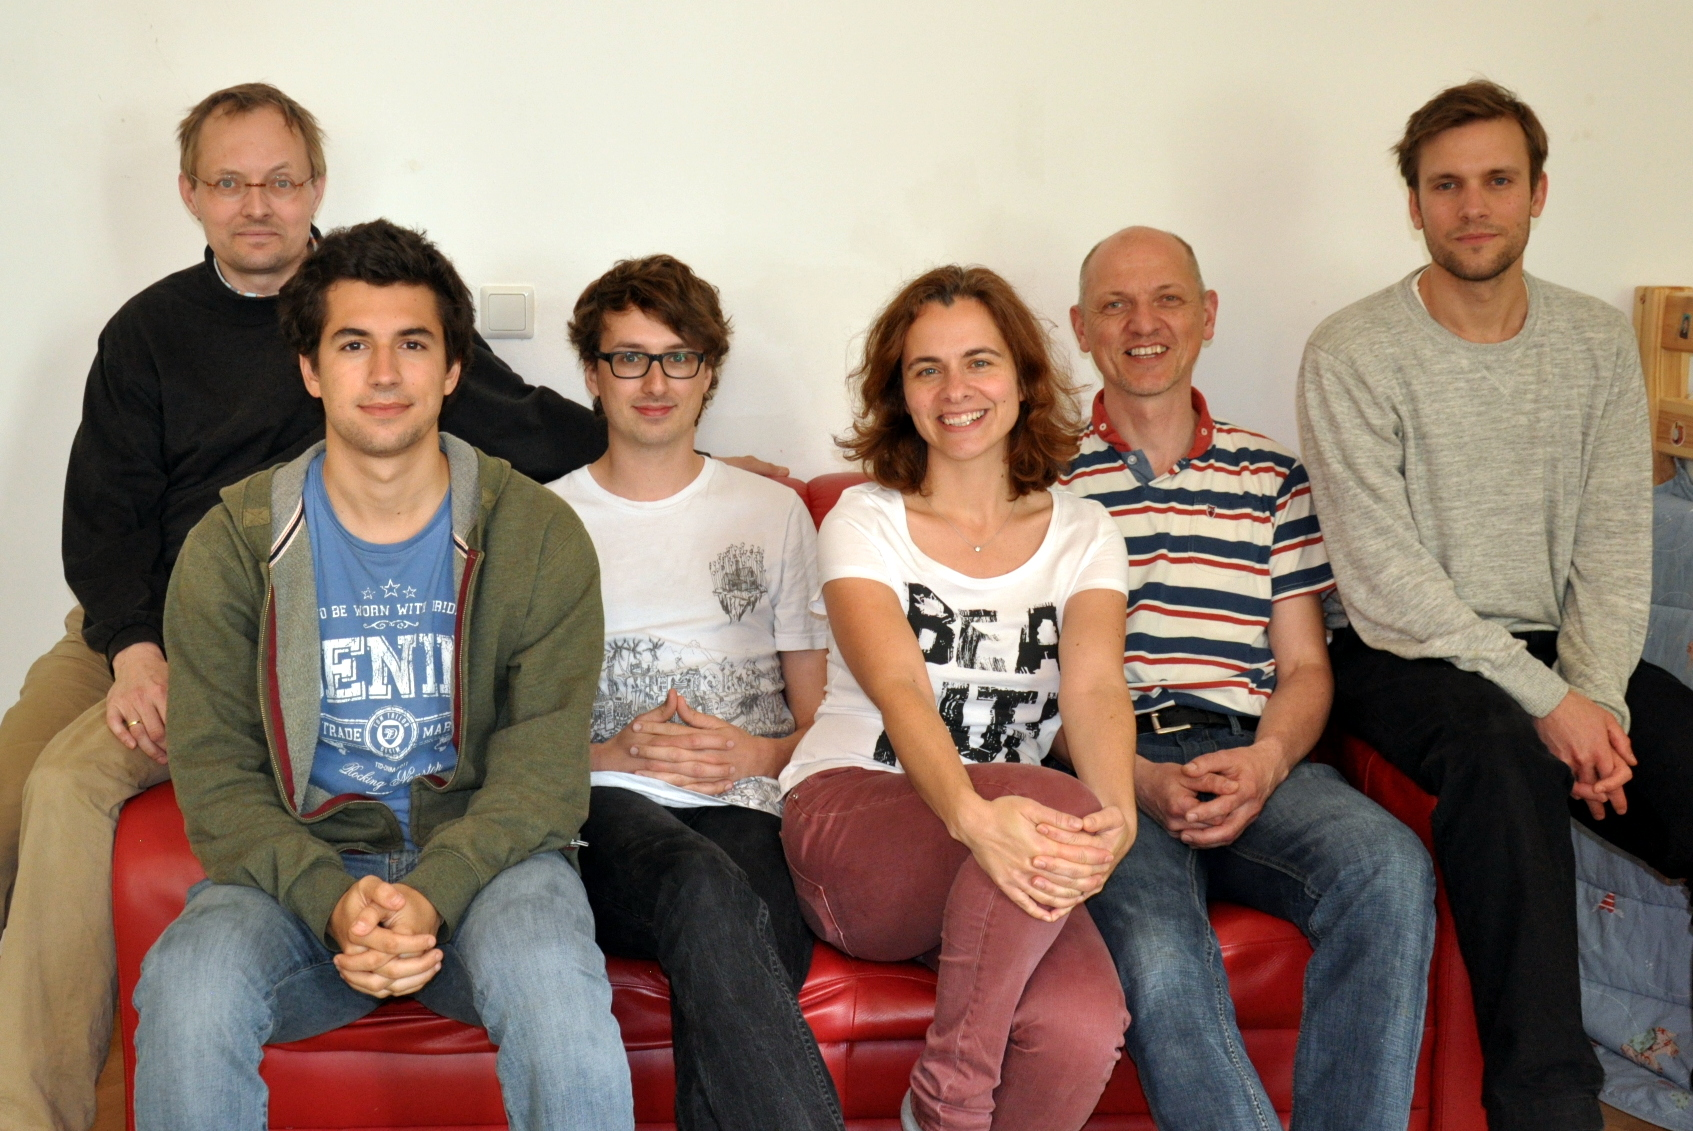 The Crazy Robots' team at TU Vienna.